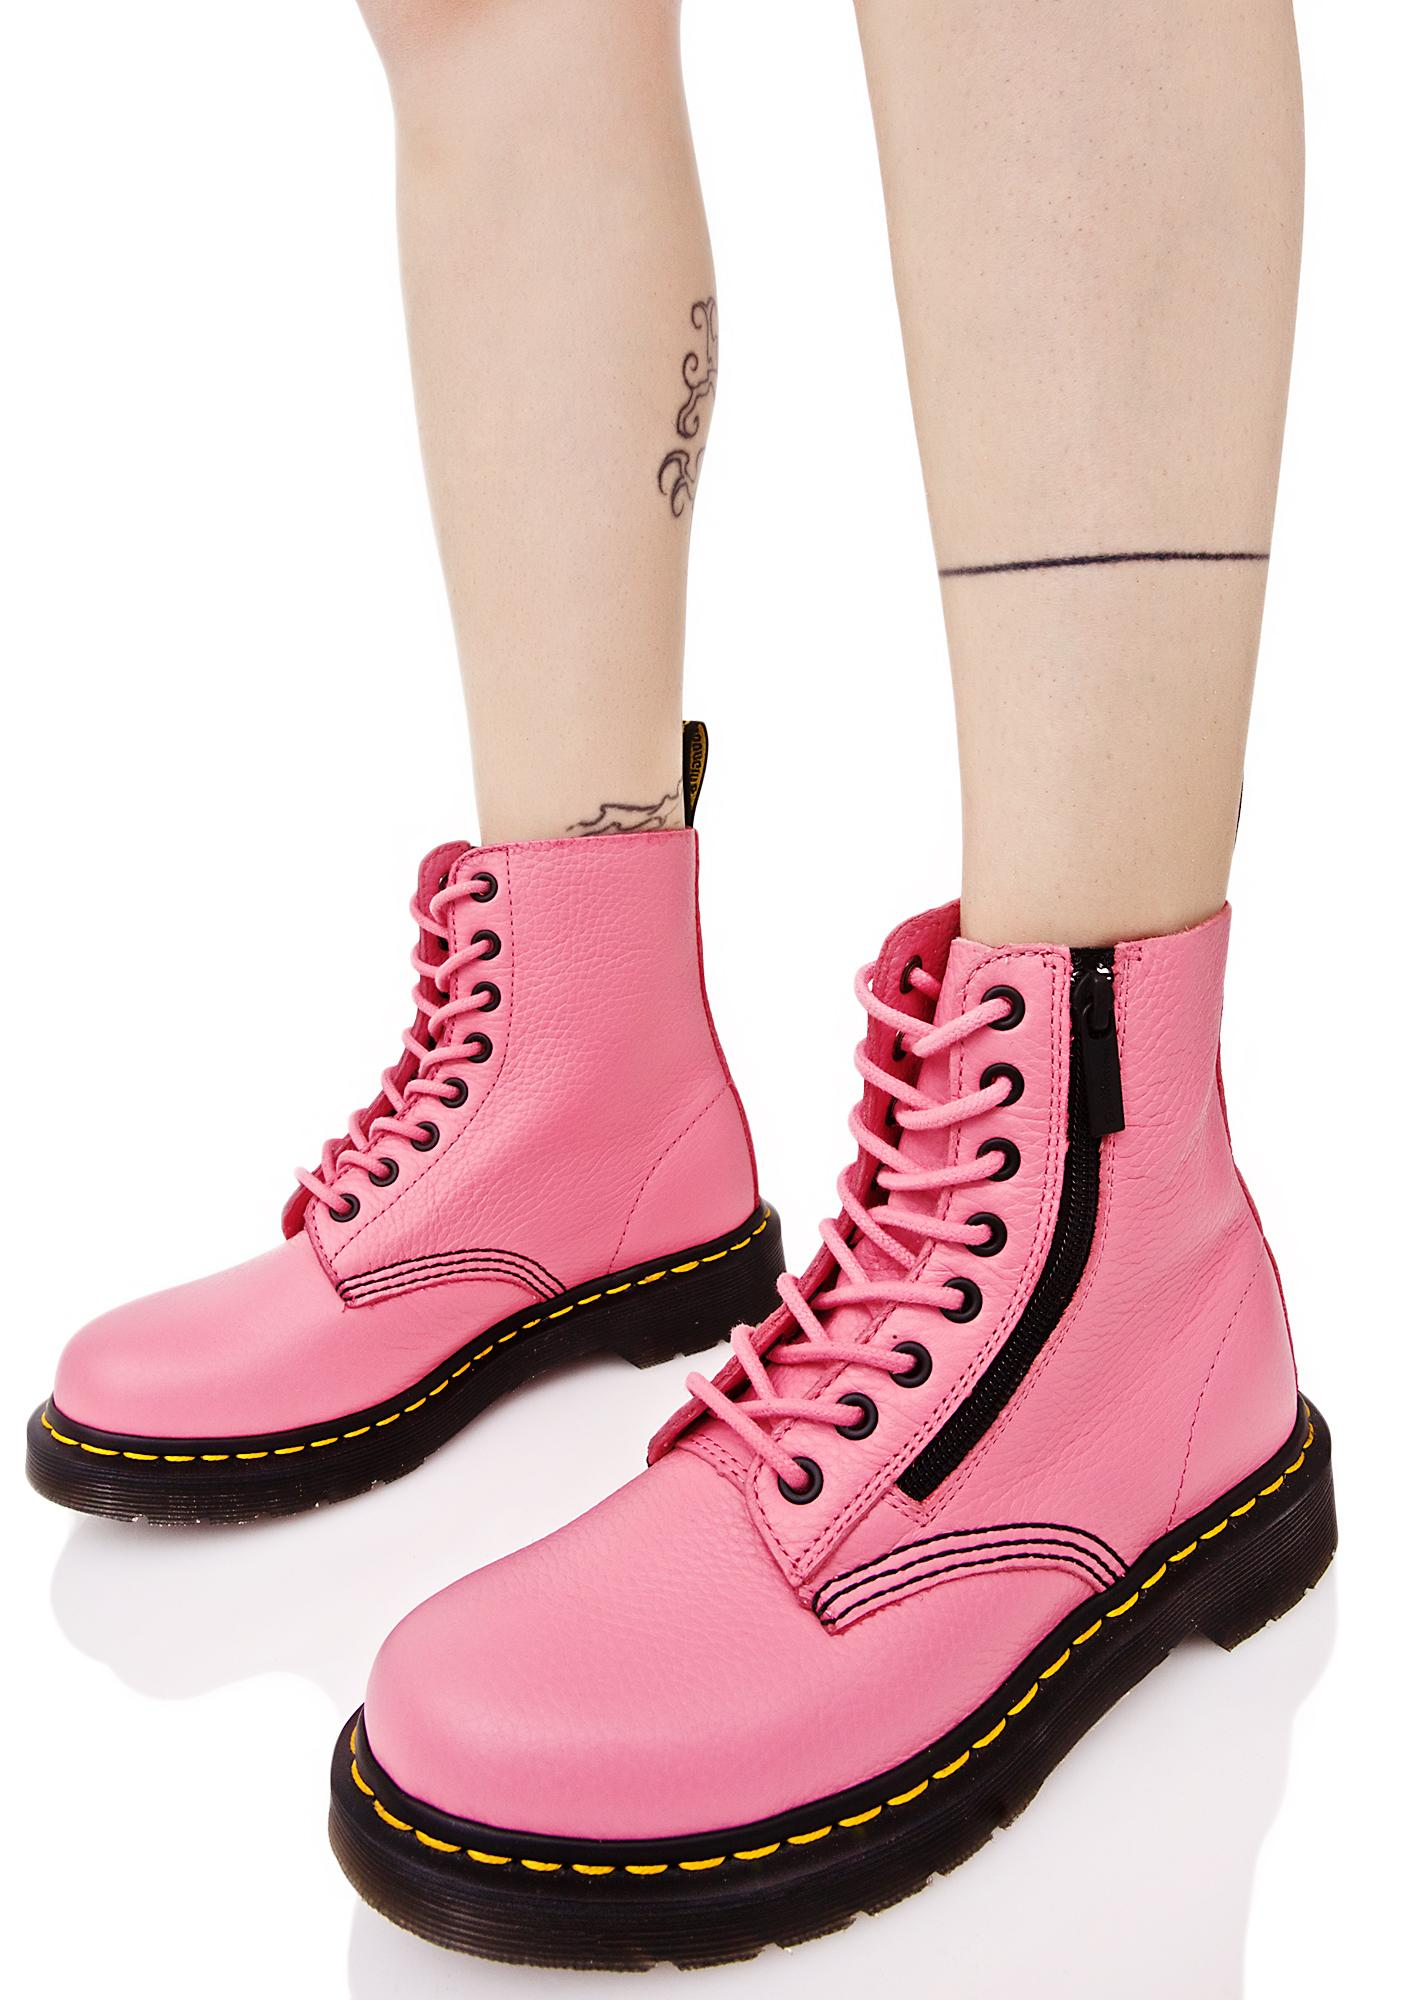 Dr. Martens Pink Zippered Pascal 8 Eye Boots  ce75217499ae